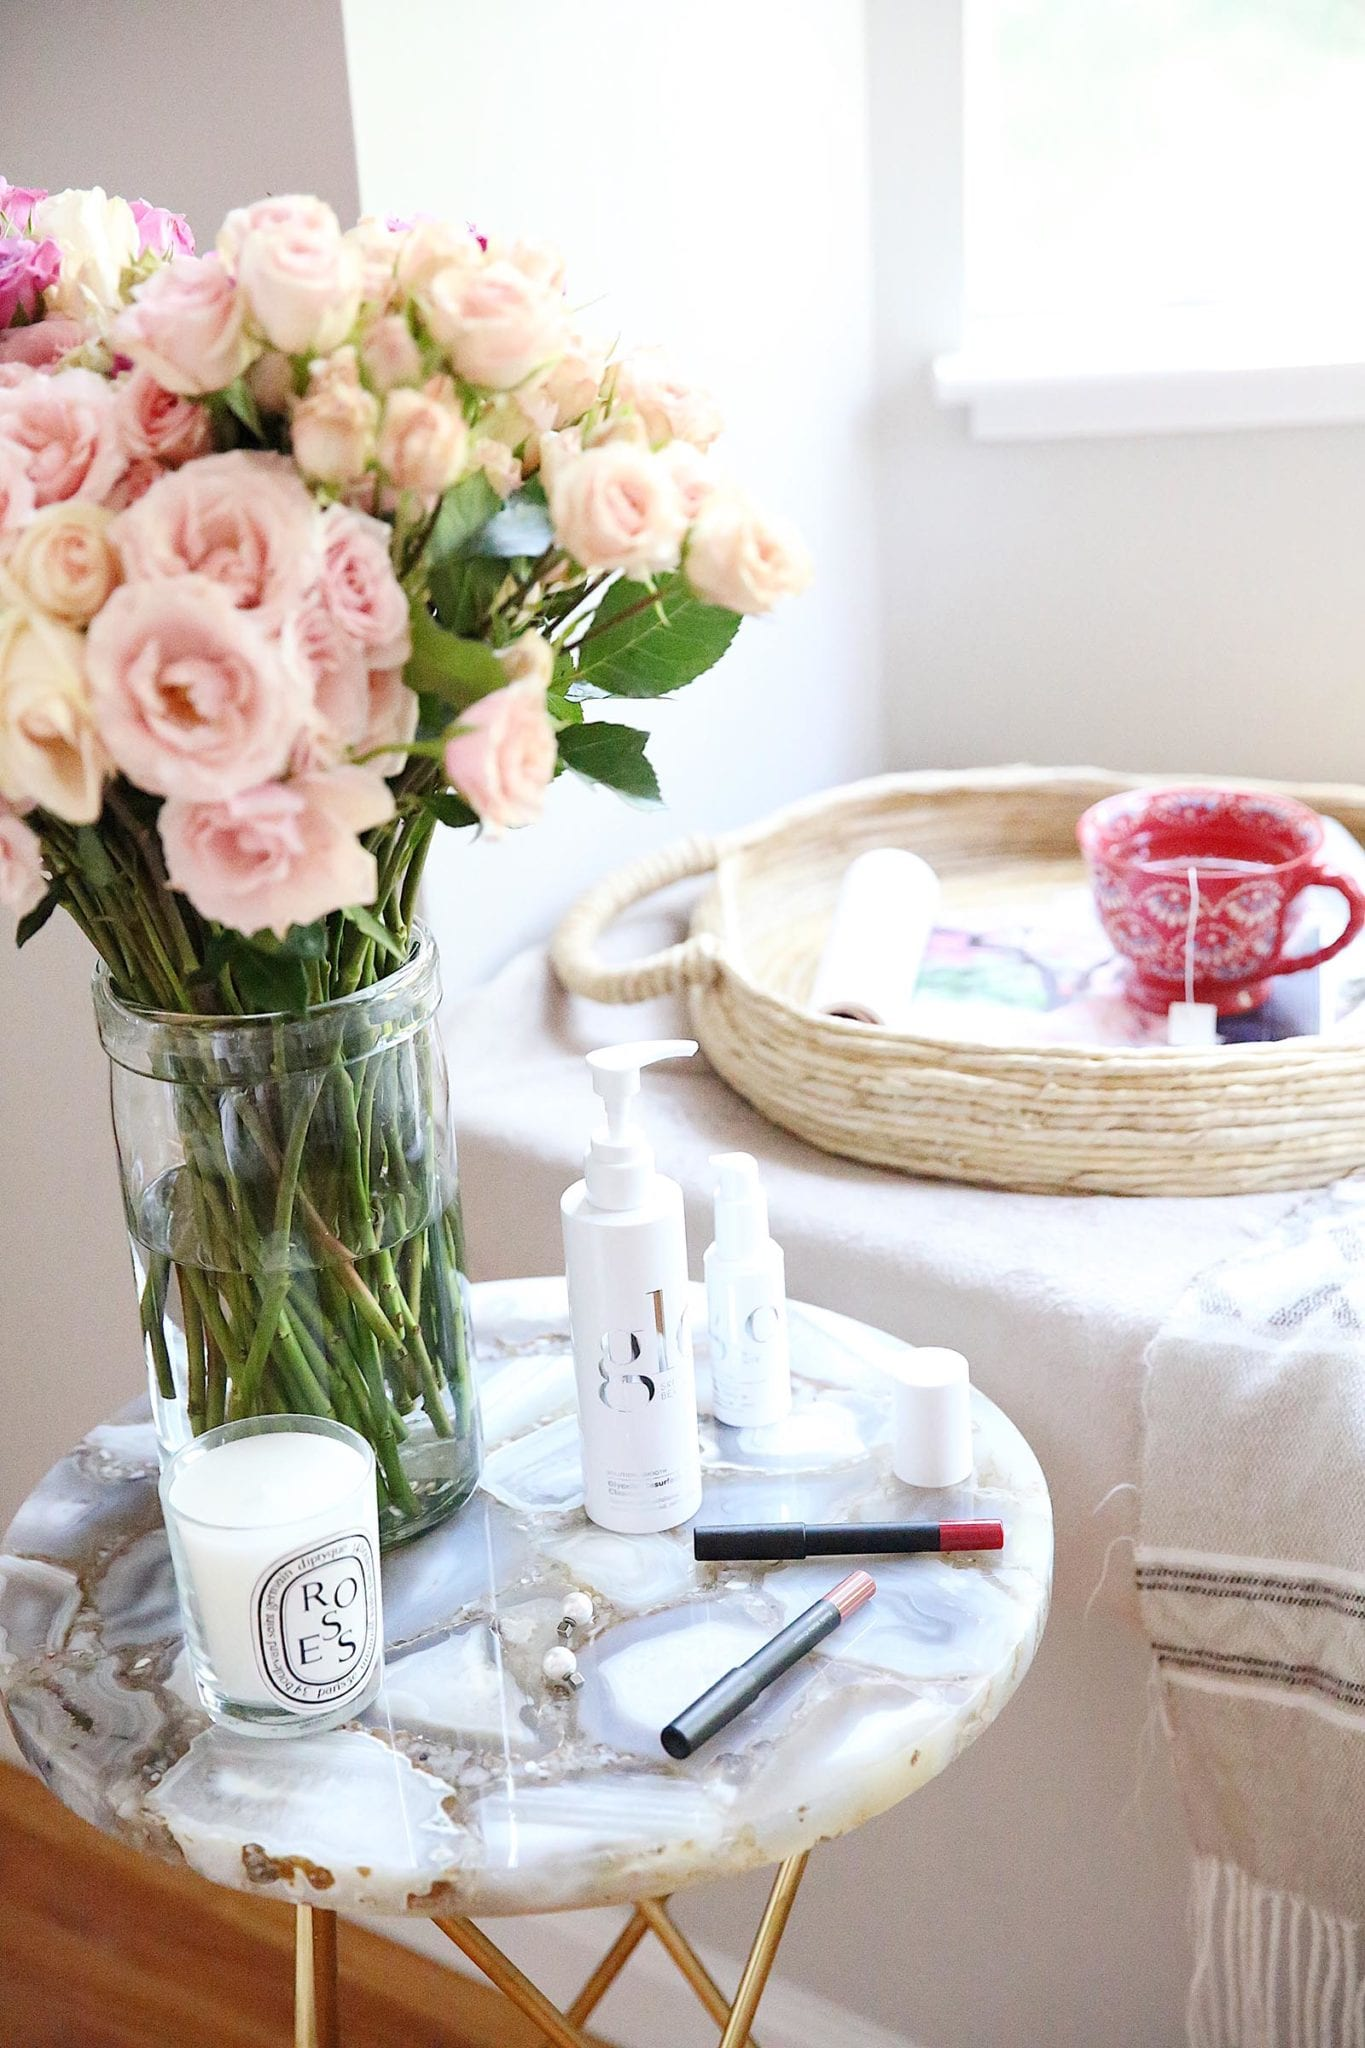 Glo Skin Beauty skin care routine featured by top San Francisco beauty blog, Just Add Glam